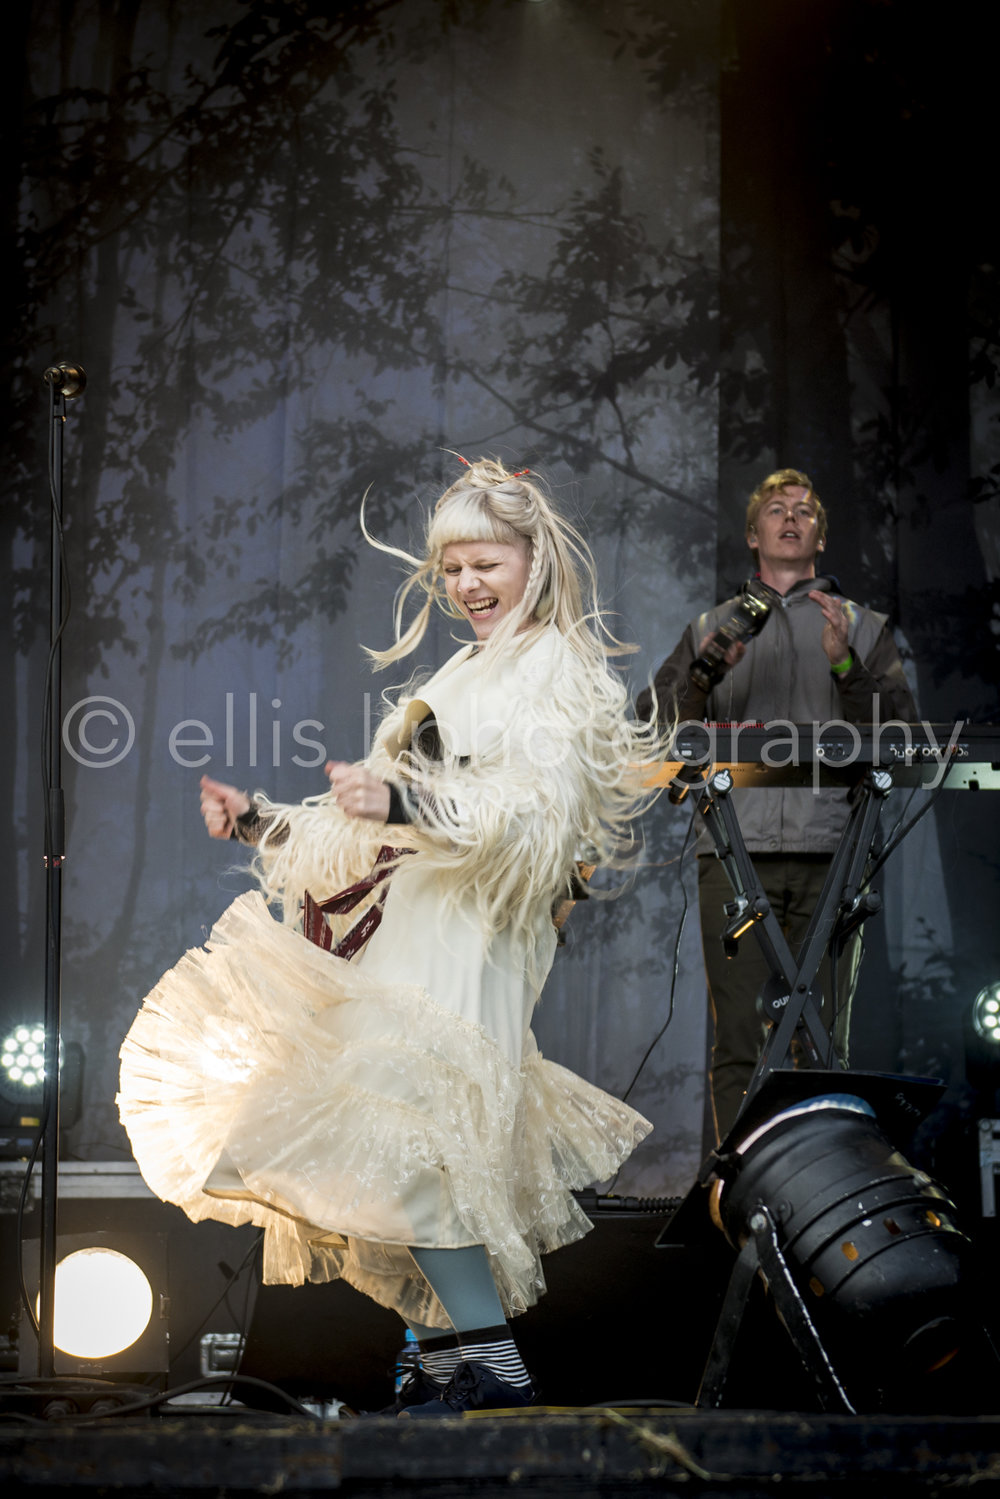 Aurora singer songwriter going wild and crazy during her performance of the festival on Træna, island of Norway. Ellis Peeters Photography